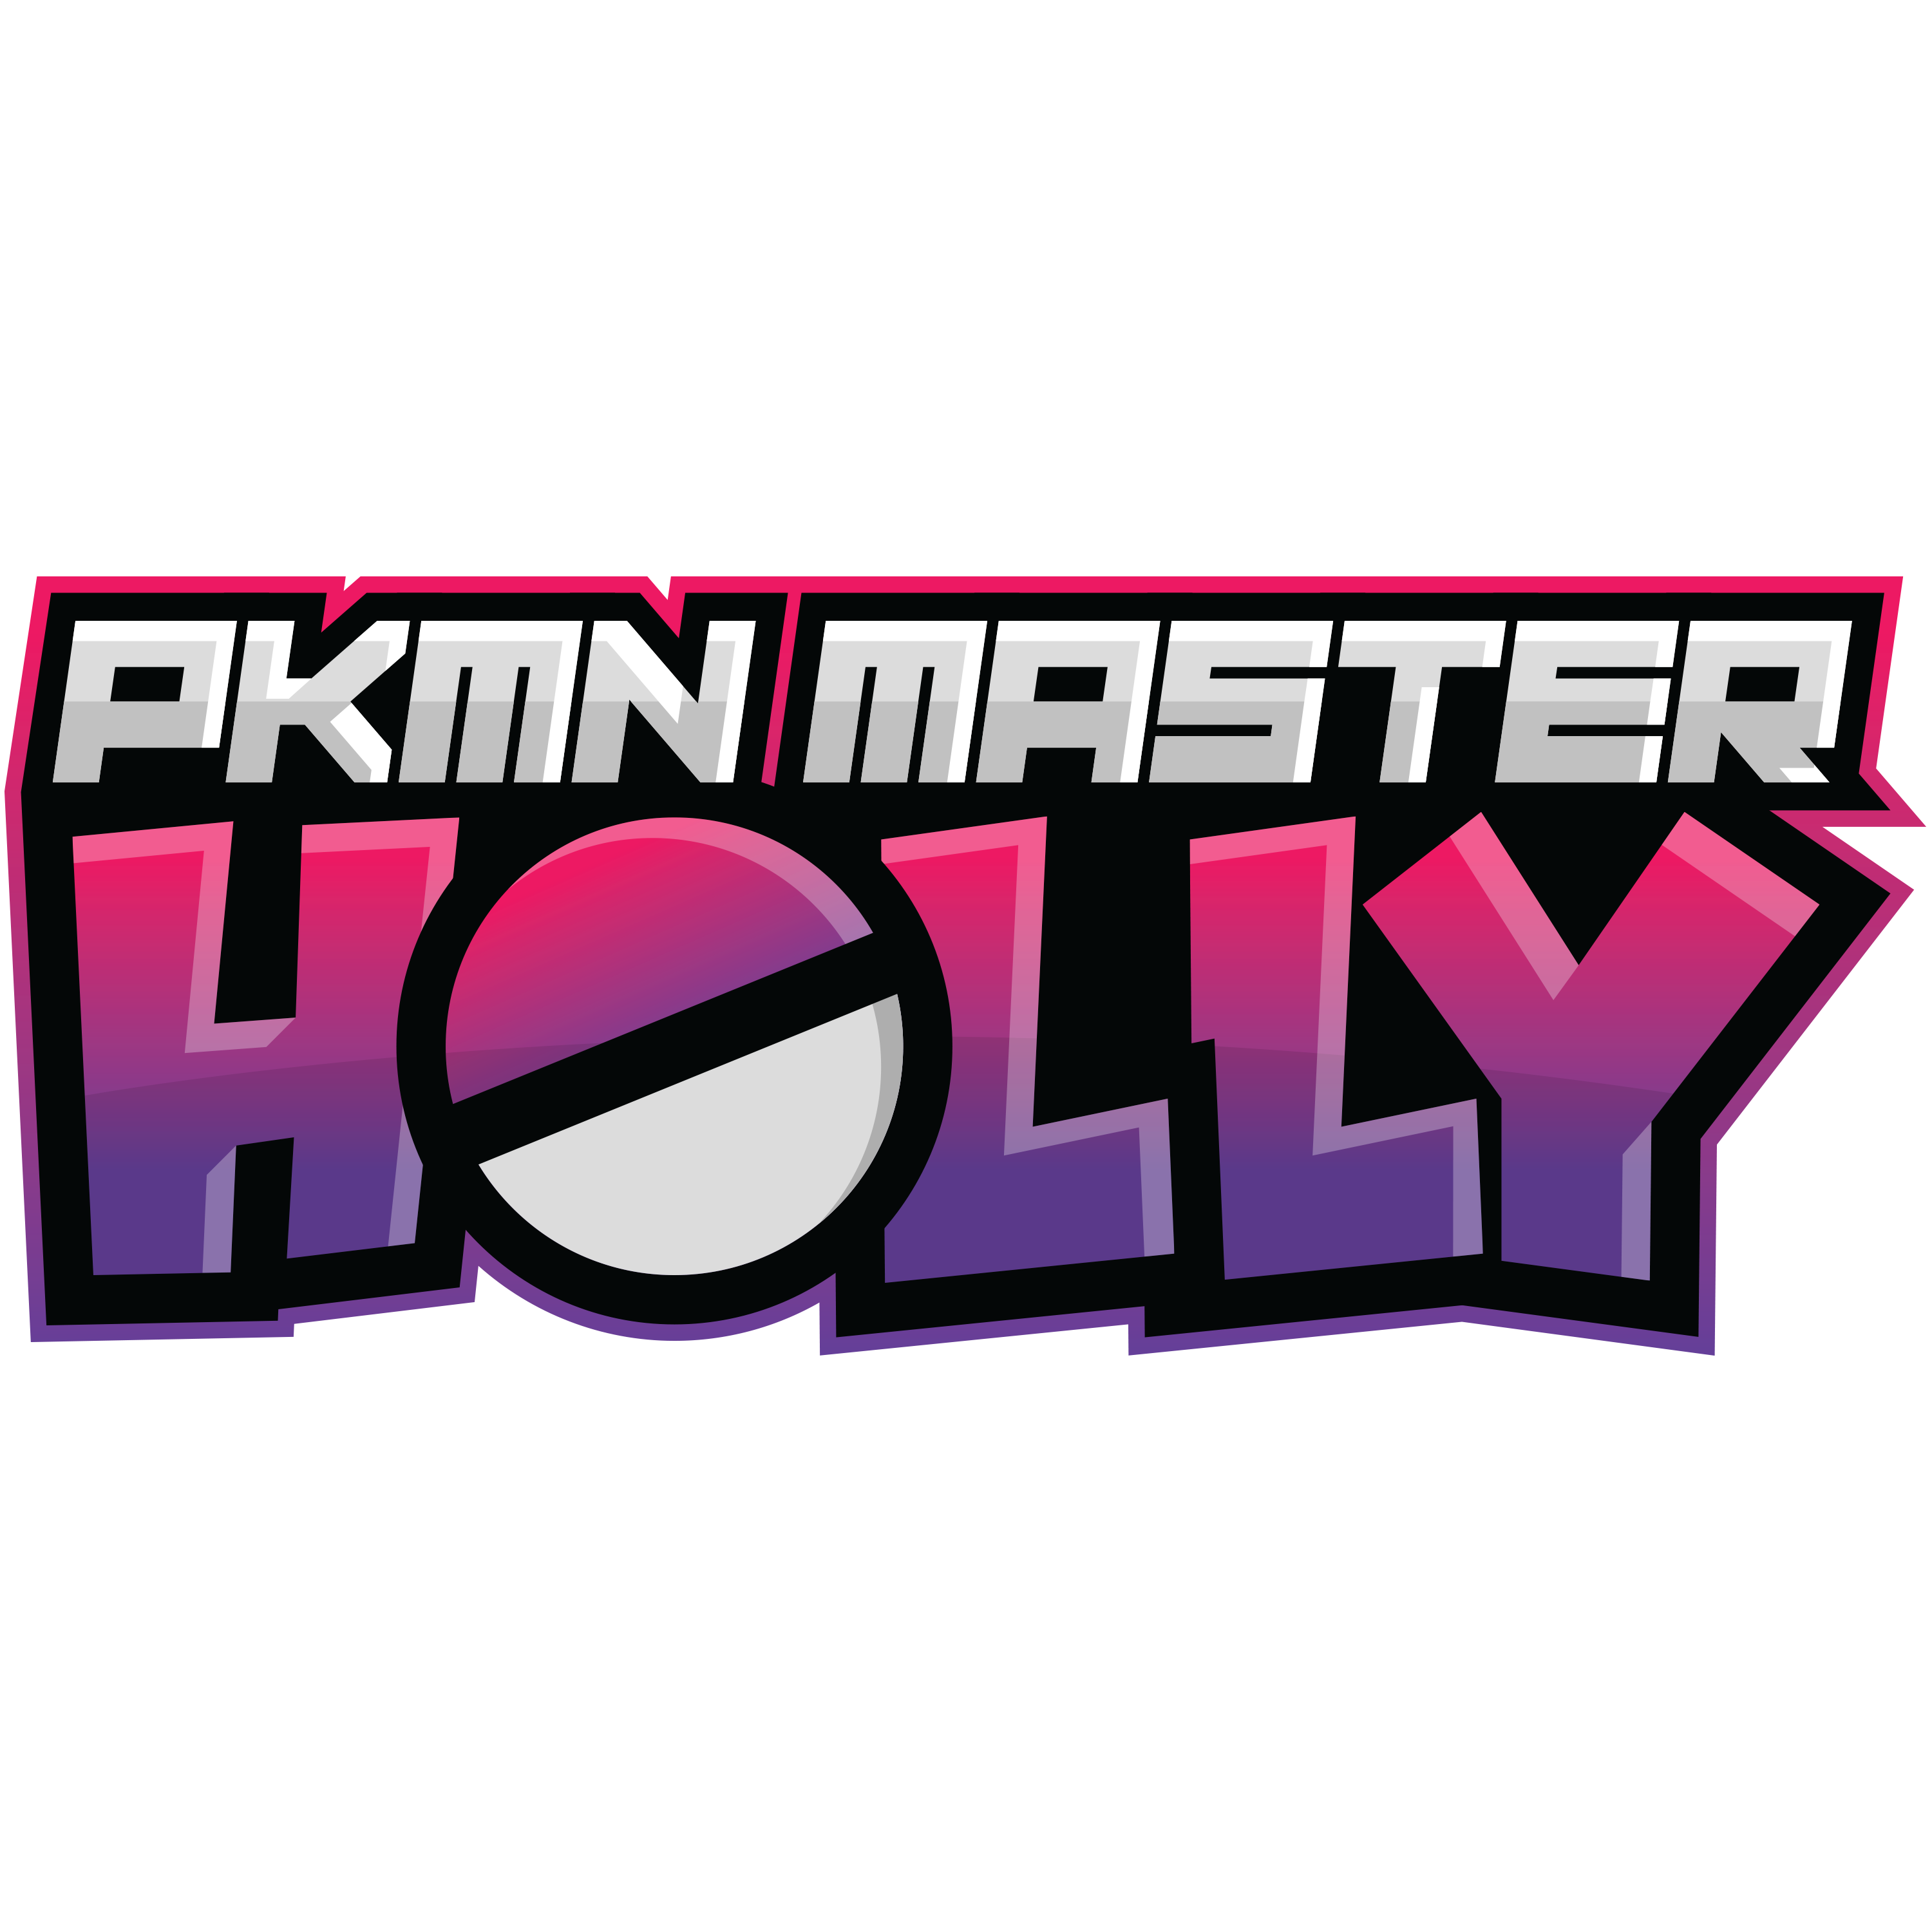 The Official Pkmn Master Holly Merch Store